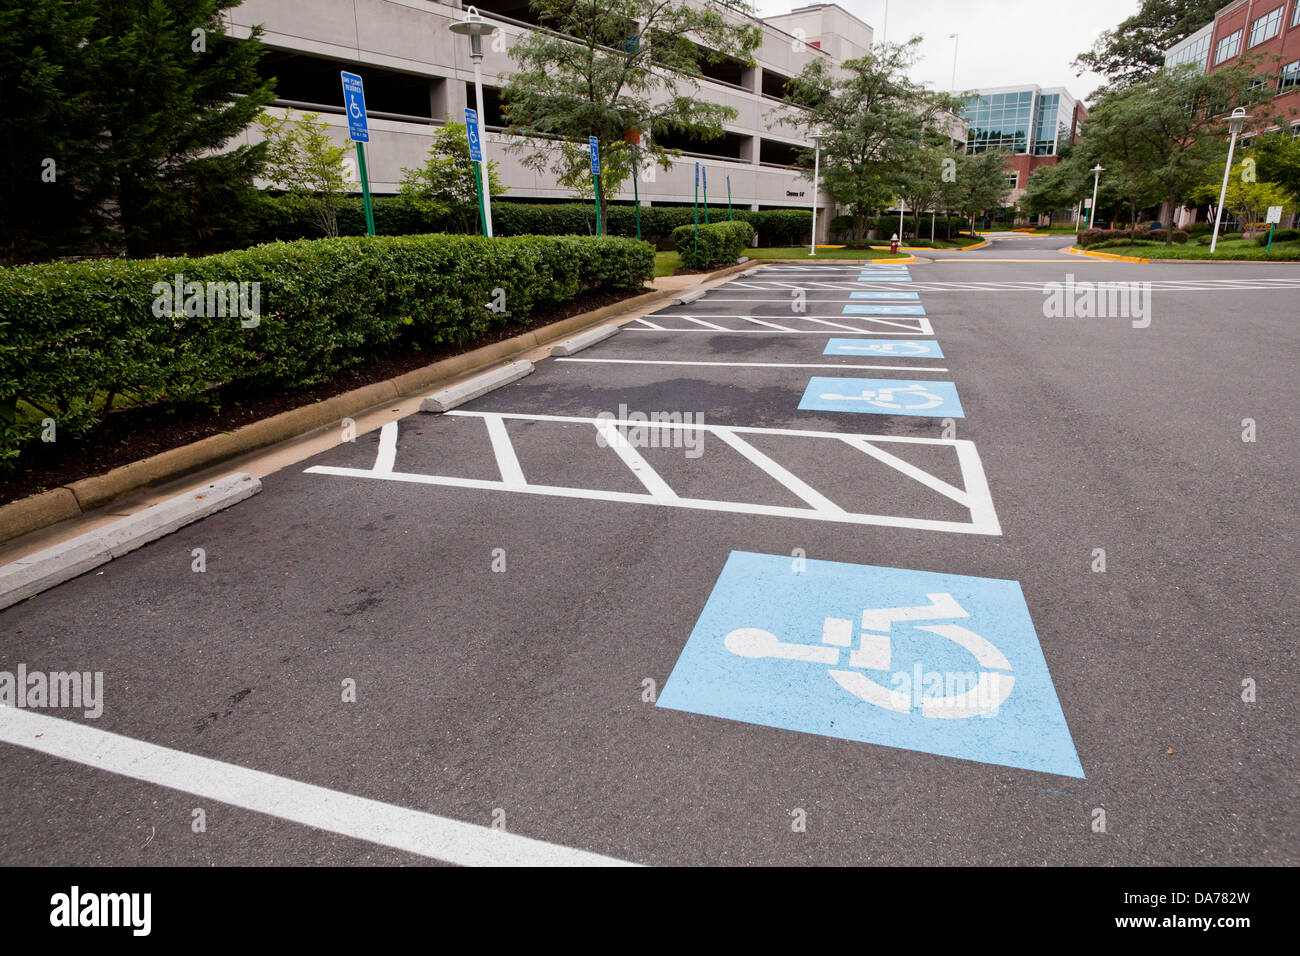 Disabled parking spaces Stock Photo